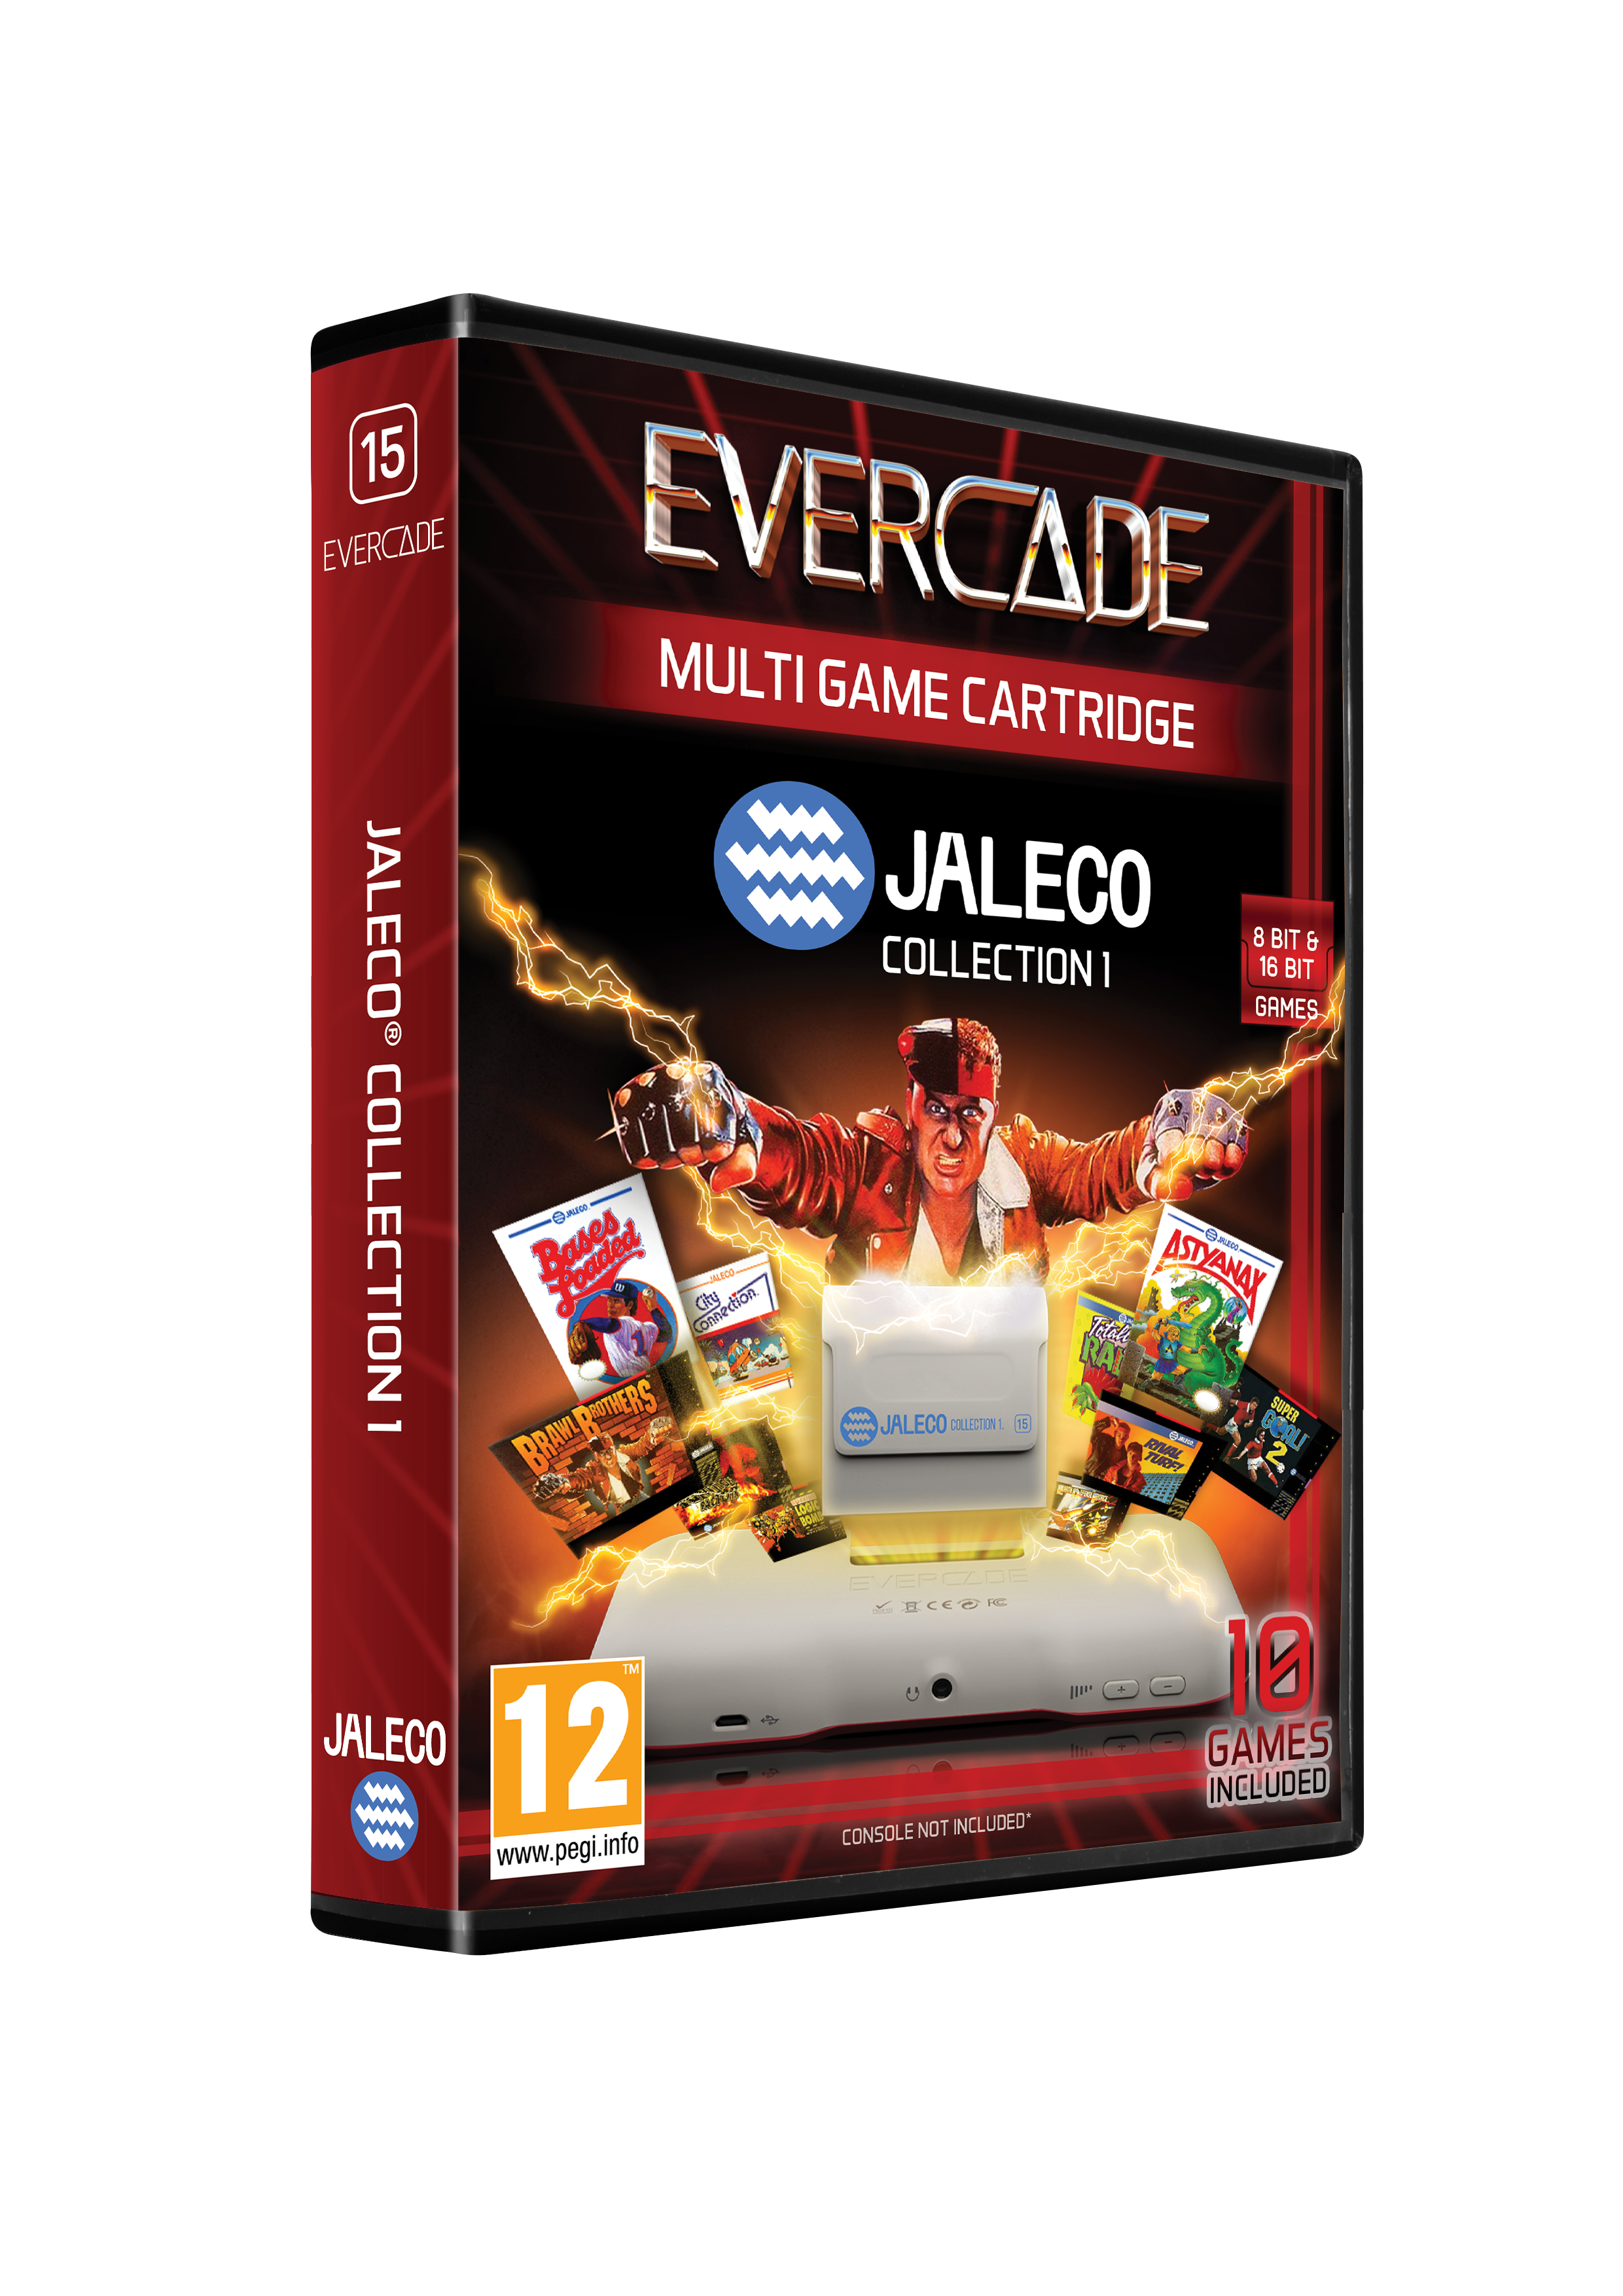 Evercade Jaleco - cartridge 1